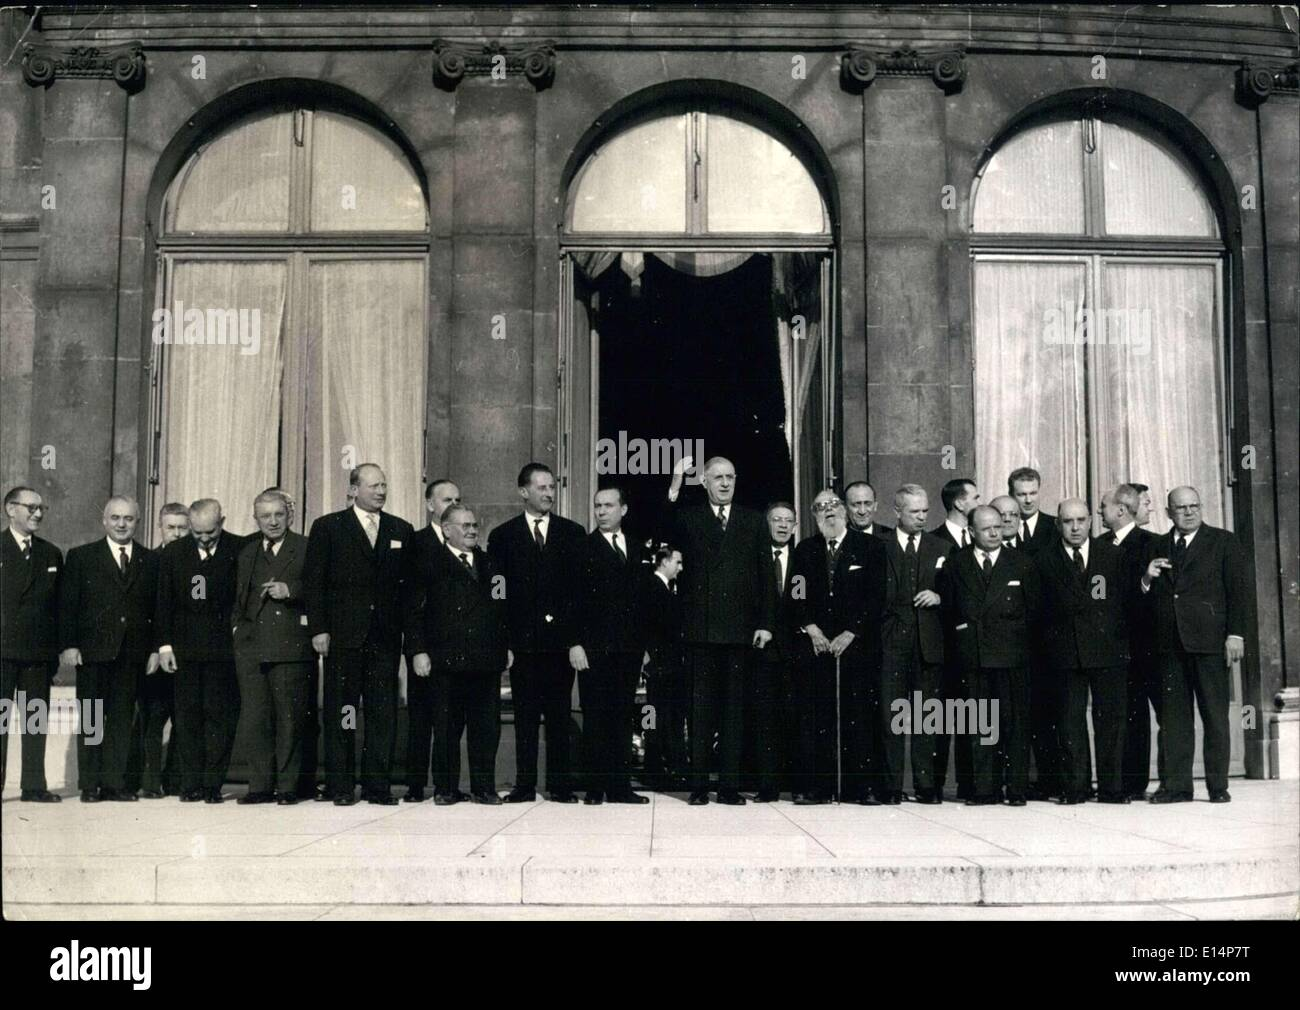 Apr. 12, 2012 - General Charles De Gaulle Opens 46th French Congress Tremintin ESS. - Stock Image